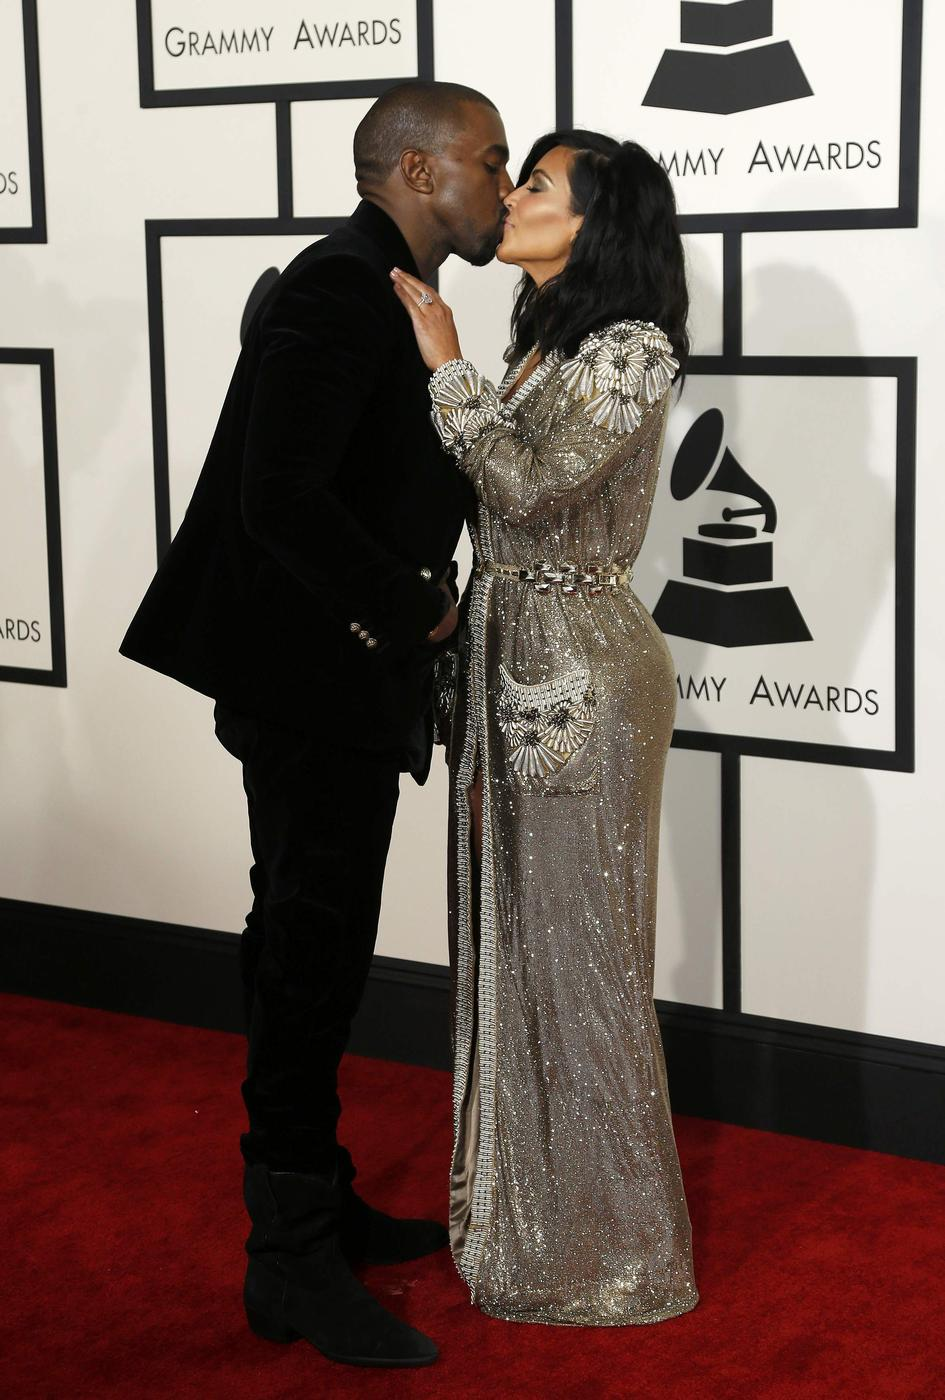 Rapper Kanye West and Kim Kardashian arrive at the 57th annual Grammy Awards in Los Angeles, California February 8, 2015. REUTERS/Mario Anzuoni (UNITED STATES - TAGS: ENTERTAINMENT) (GRAMMYS-ARRIVALS) Mario Anzuoni/Reuters